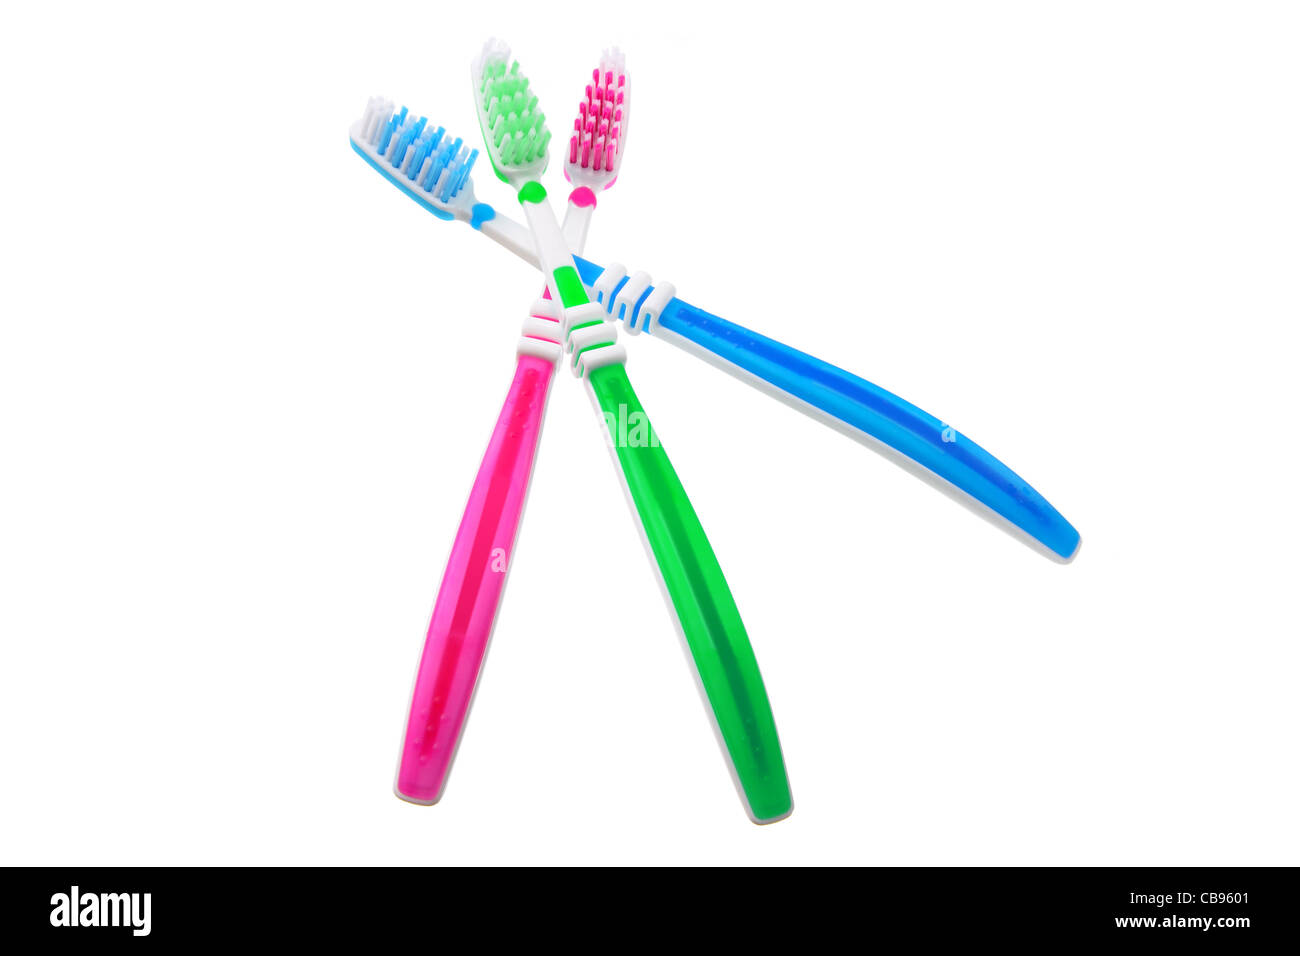 Toothbrushes - Stock Image